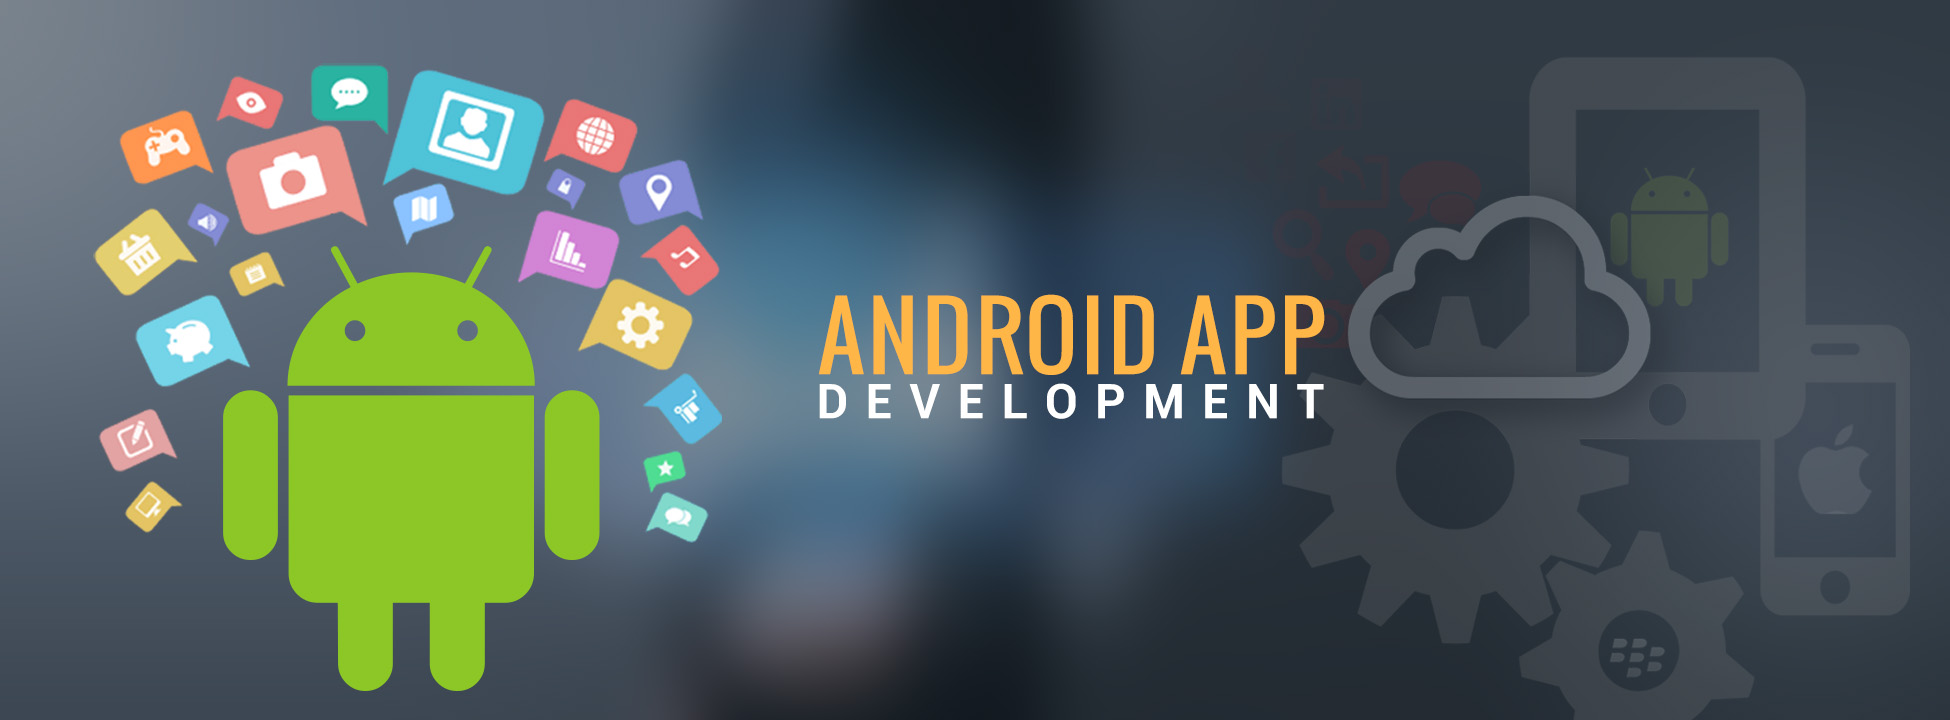 android-app-banner